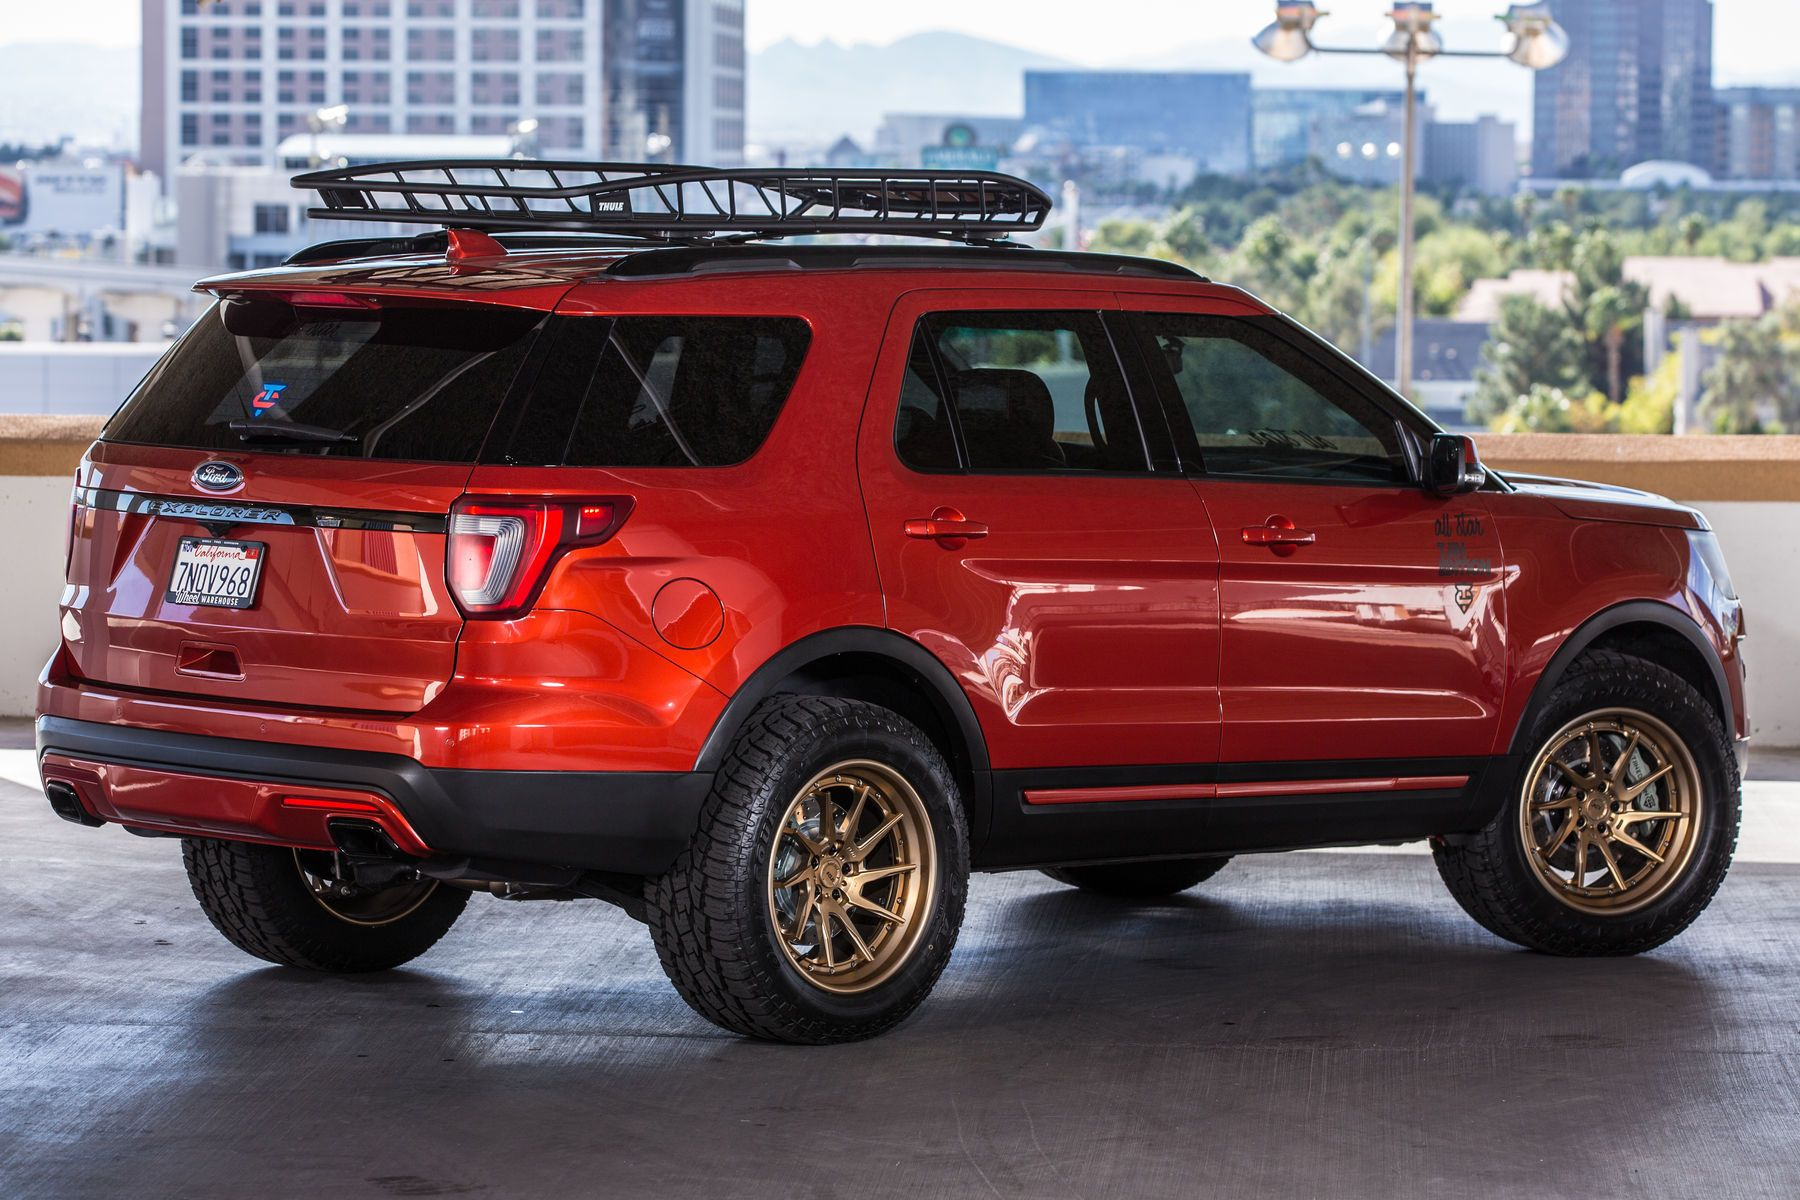 Motoroso Is The Better Way To Find What Drives You This Image Was Parked By Ford Sema 2015 To A Gara In 2020 Ford Explorer Ford Explorer Sport Ford Explorer Xlt